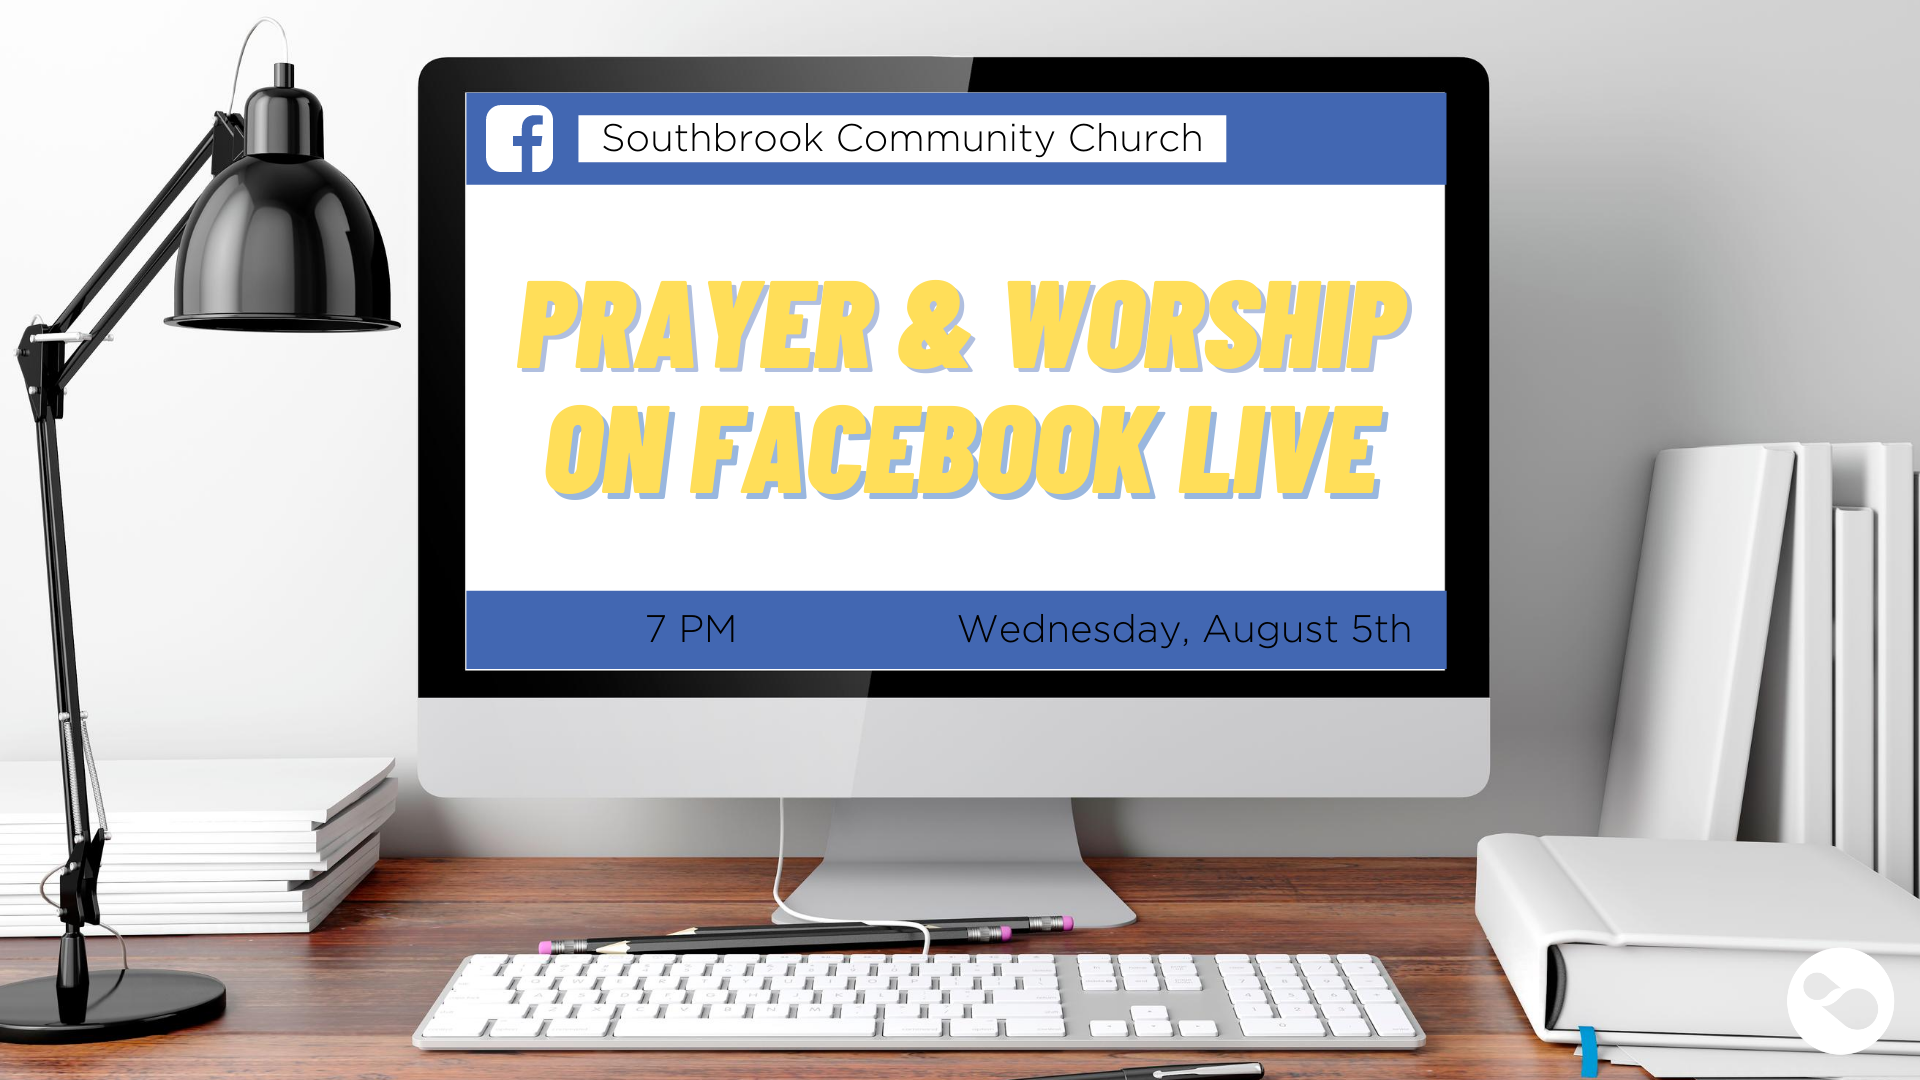 Facebook Live Prayer Week image